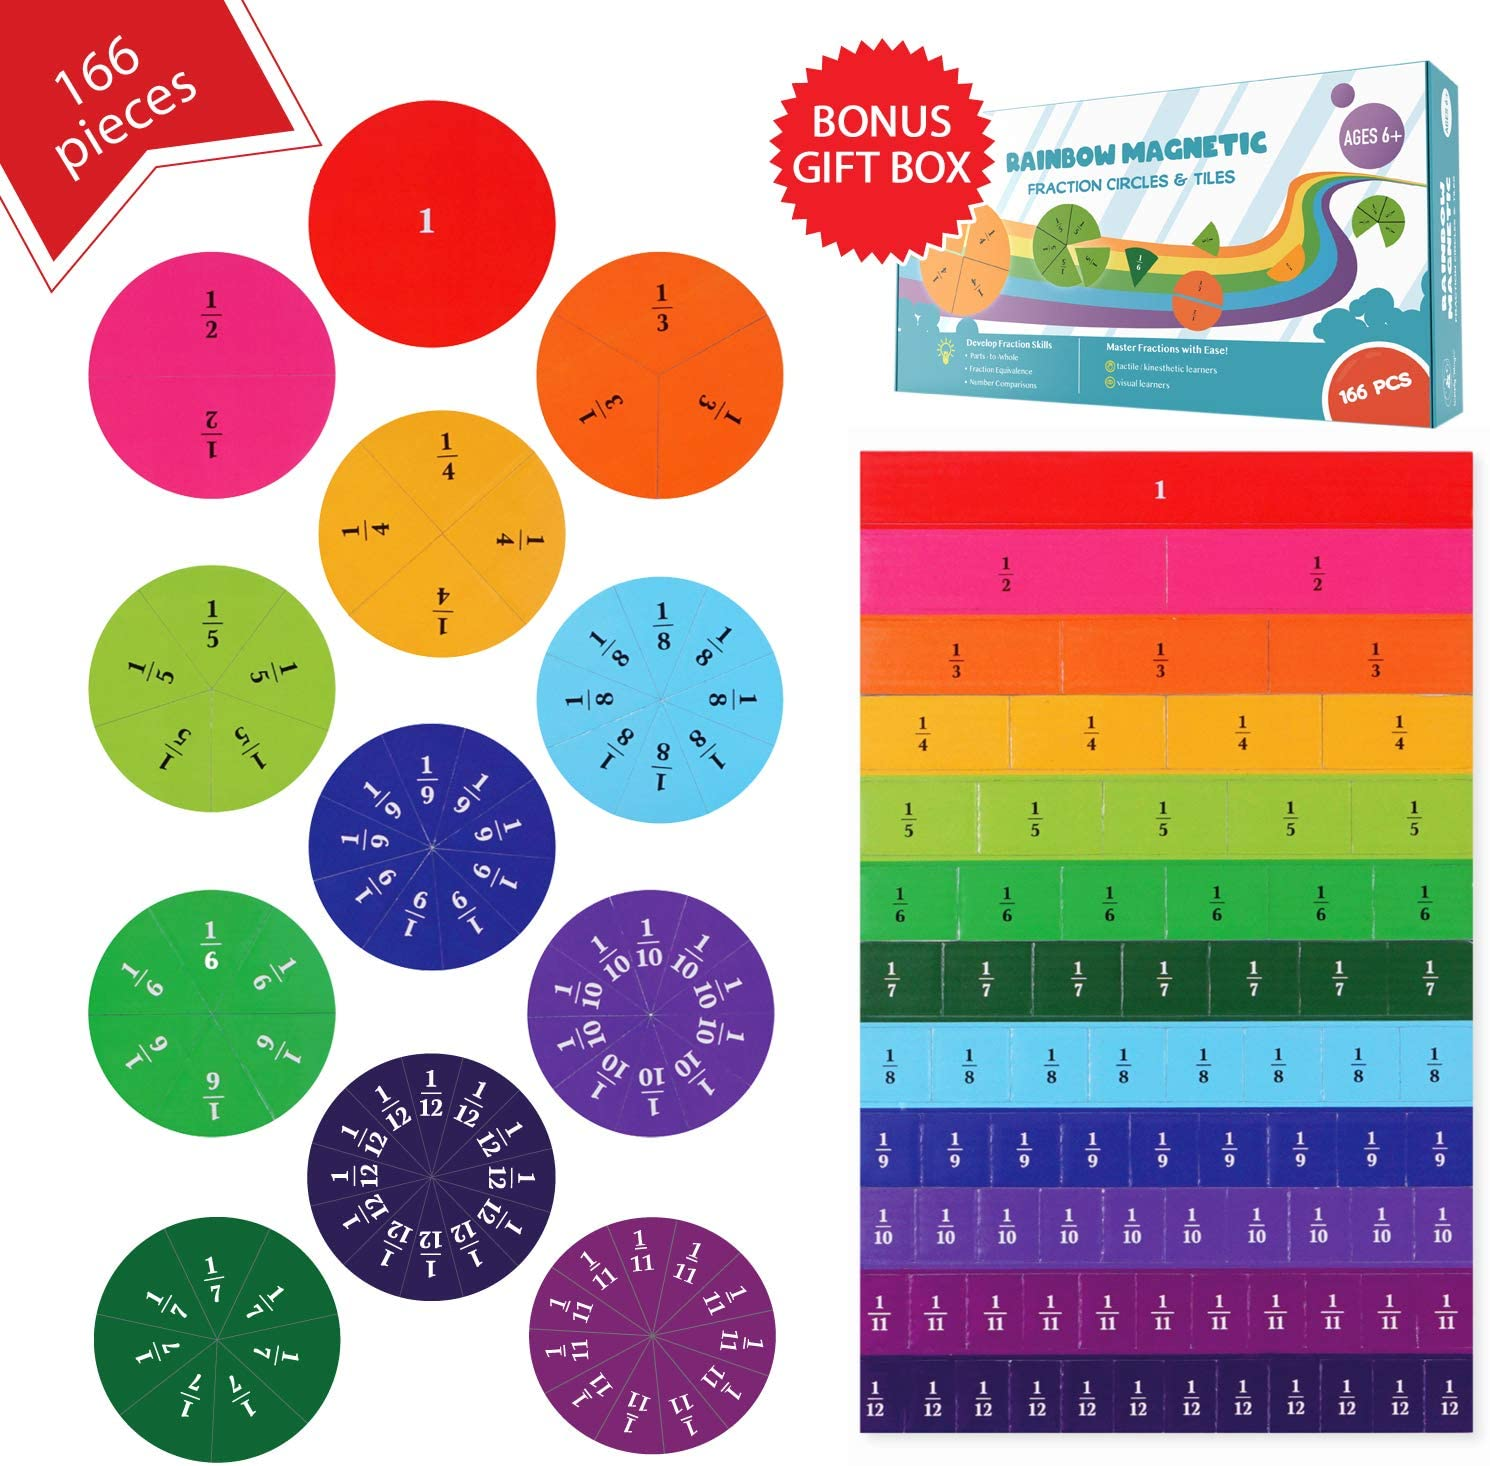 Simply magic 166 Translated PCS Tiles New item Magnetic Fraction Circles